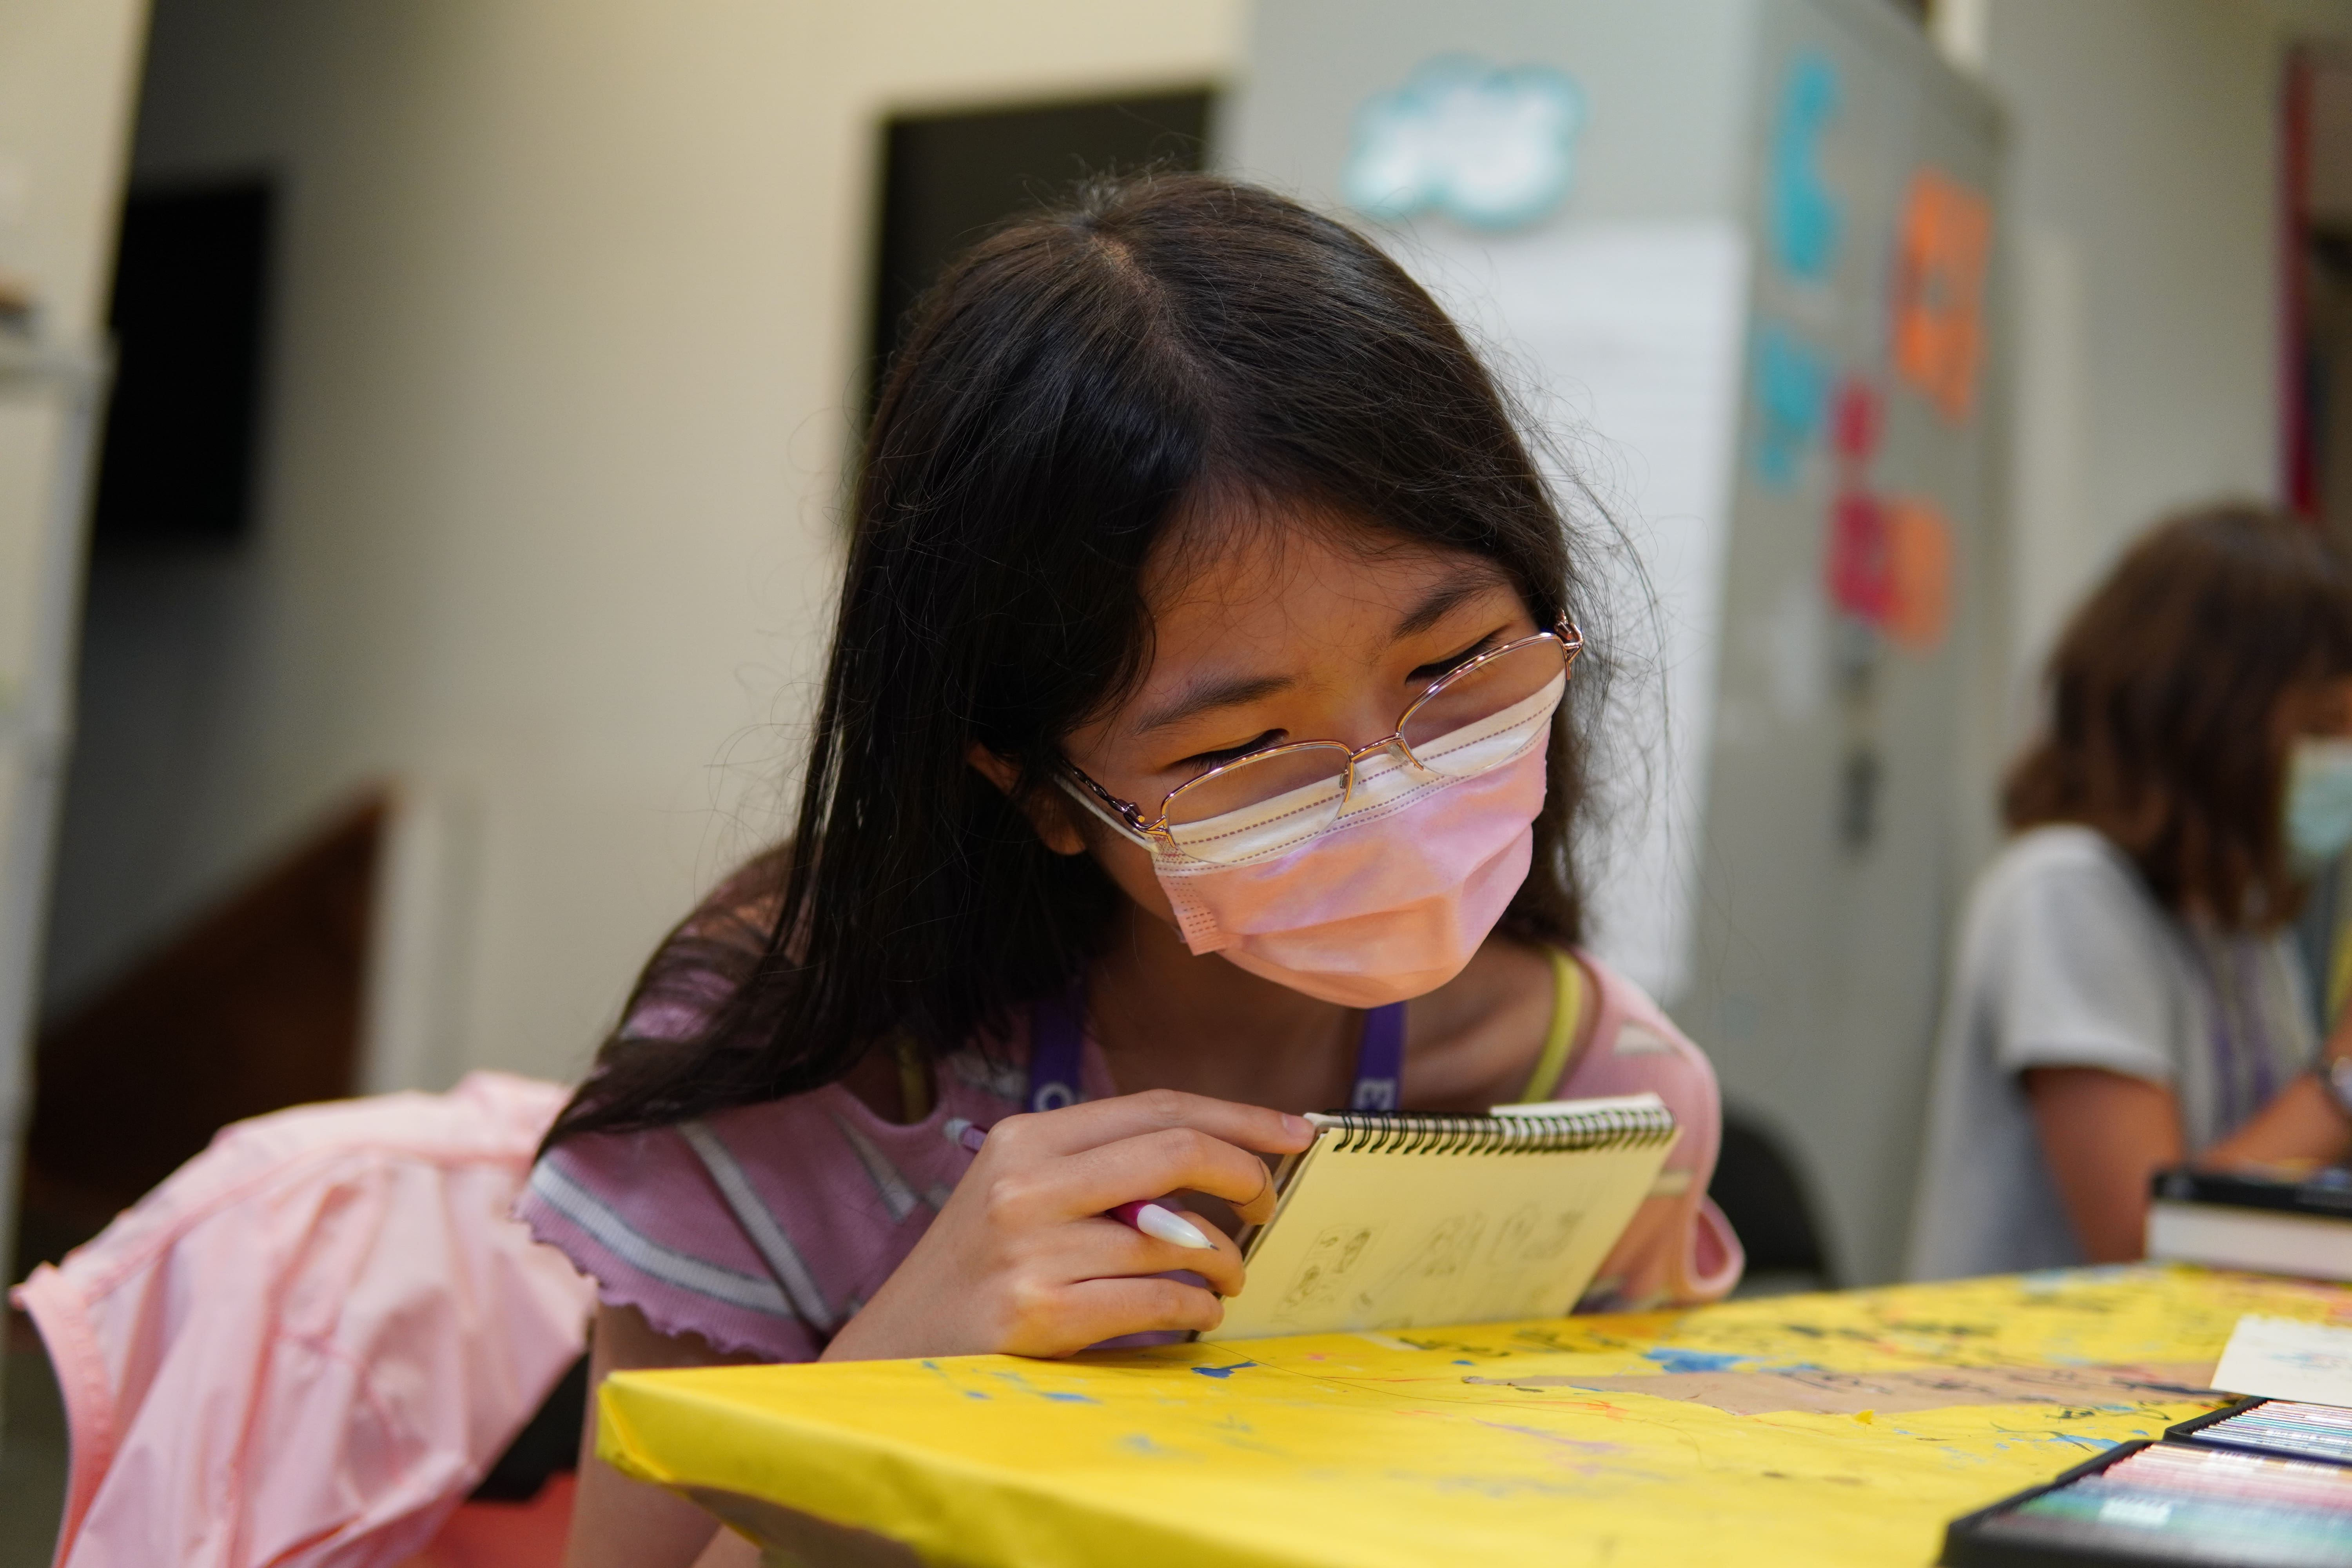 A student in a pink t-shirt and glasses leans forward closer to the yellow table where she sits, engaged in a drawing activity.